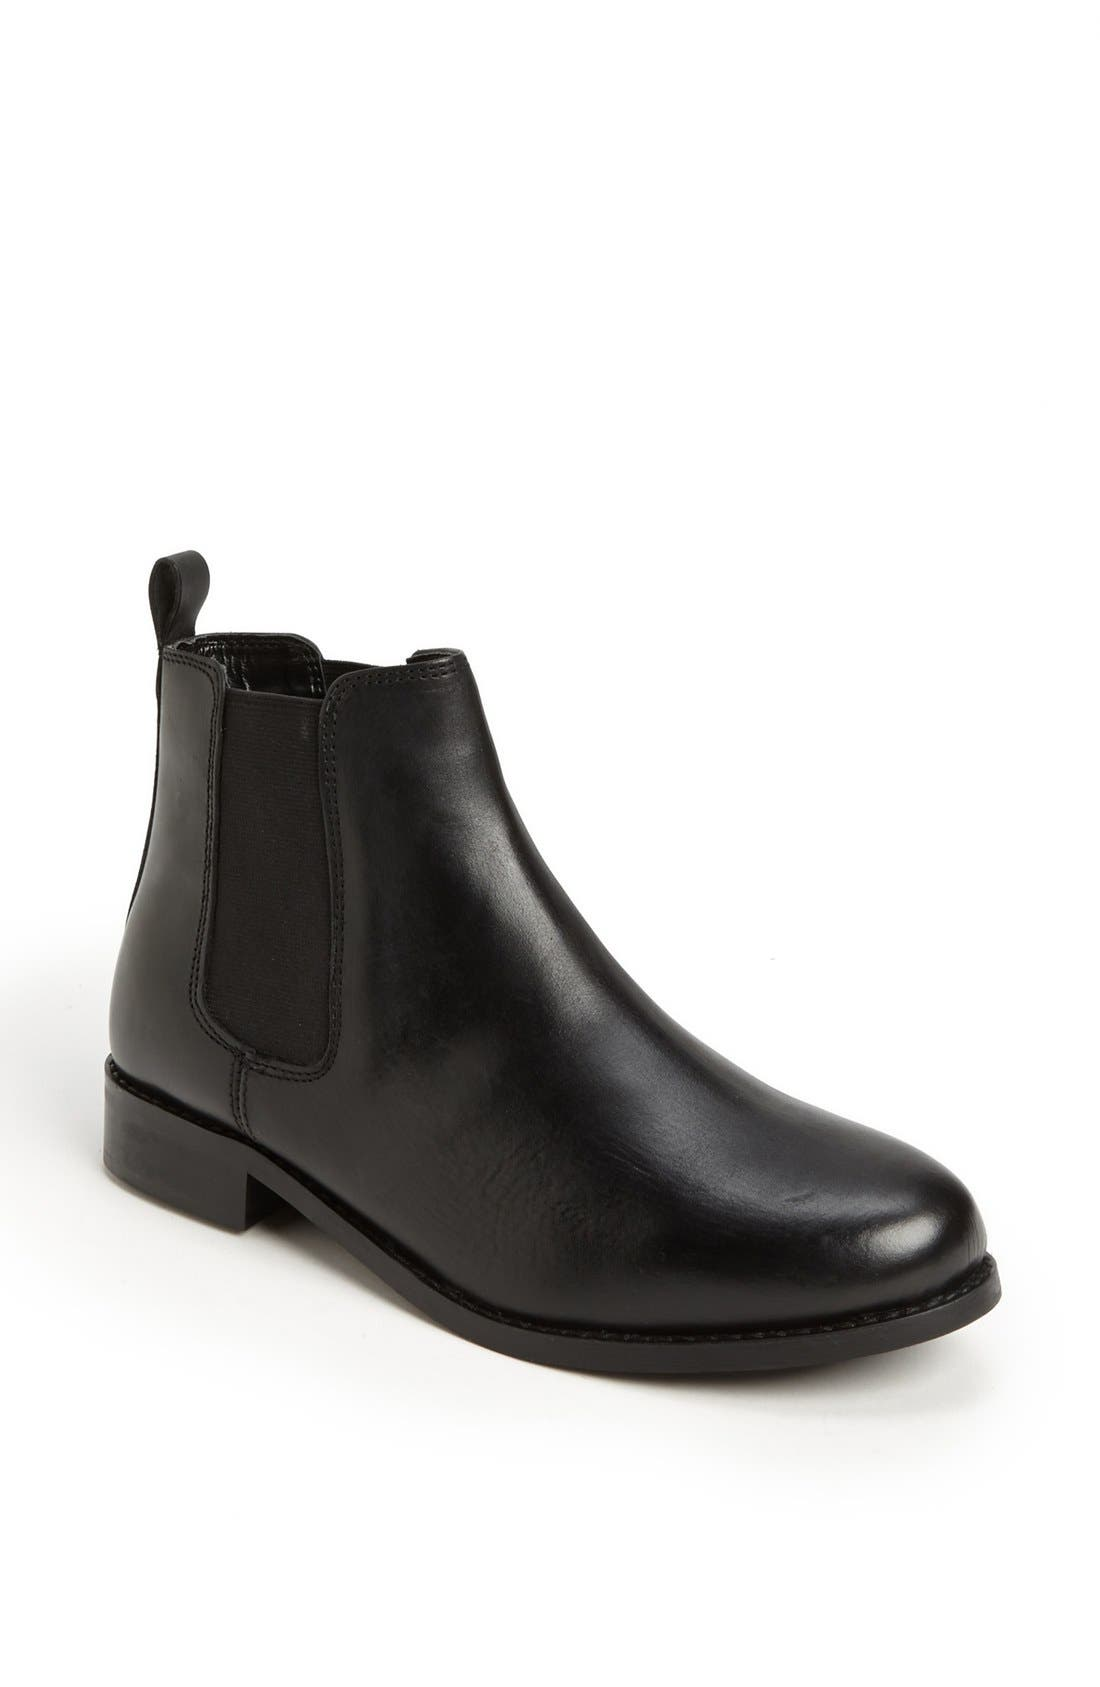 Alternate Image 1 Selected - Topshop 'Month' Chelsea Boot